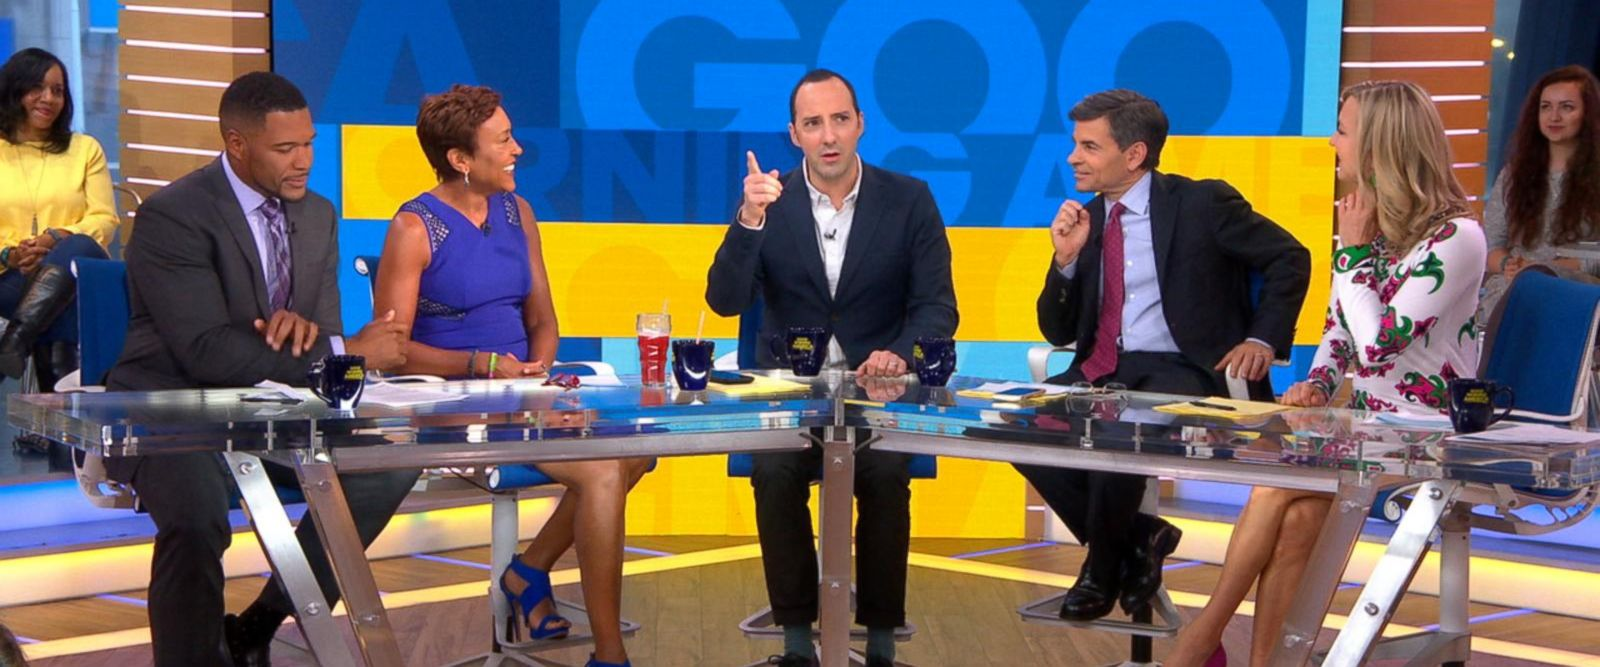 VIDEO: Tony Hale dishes on Arrested Development